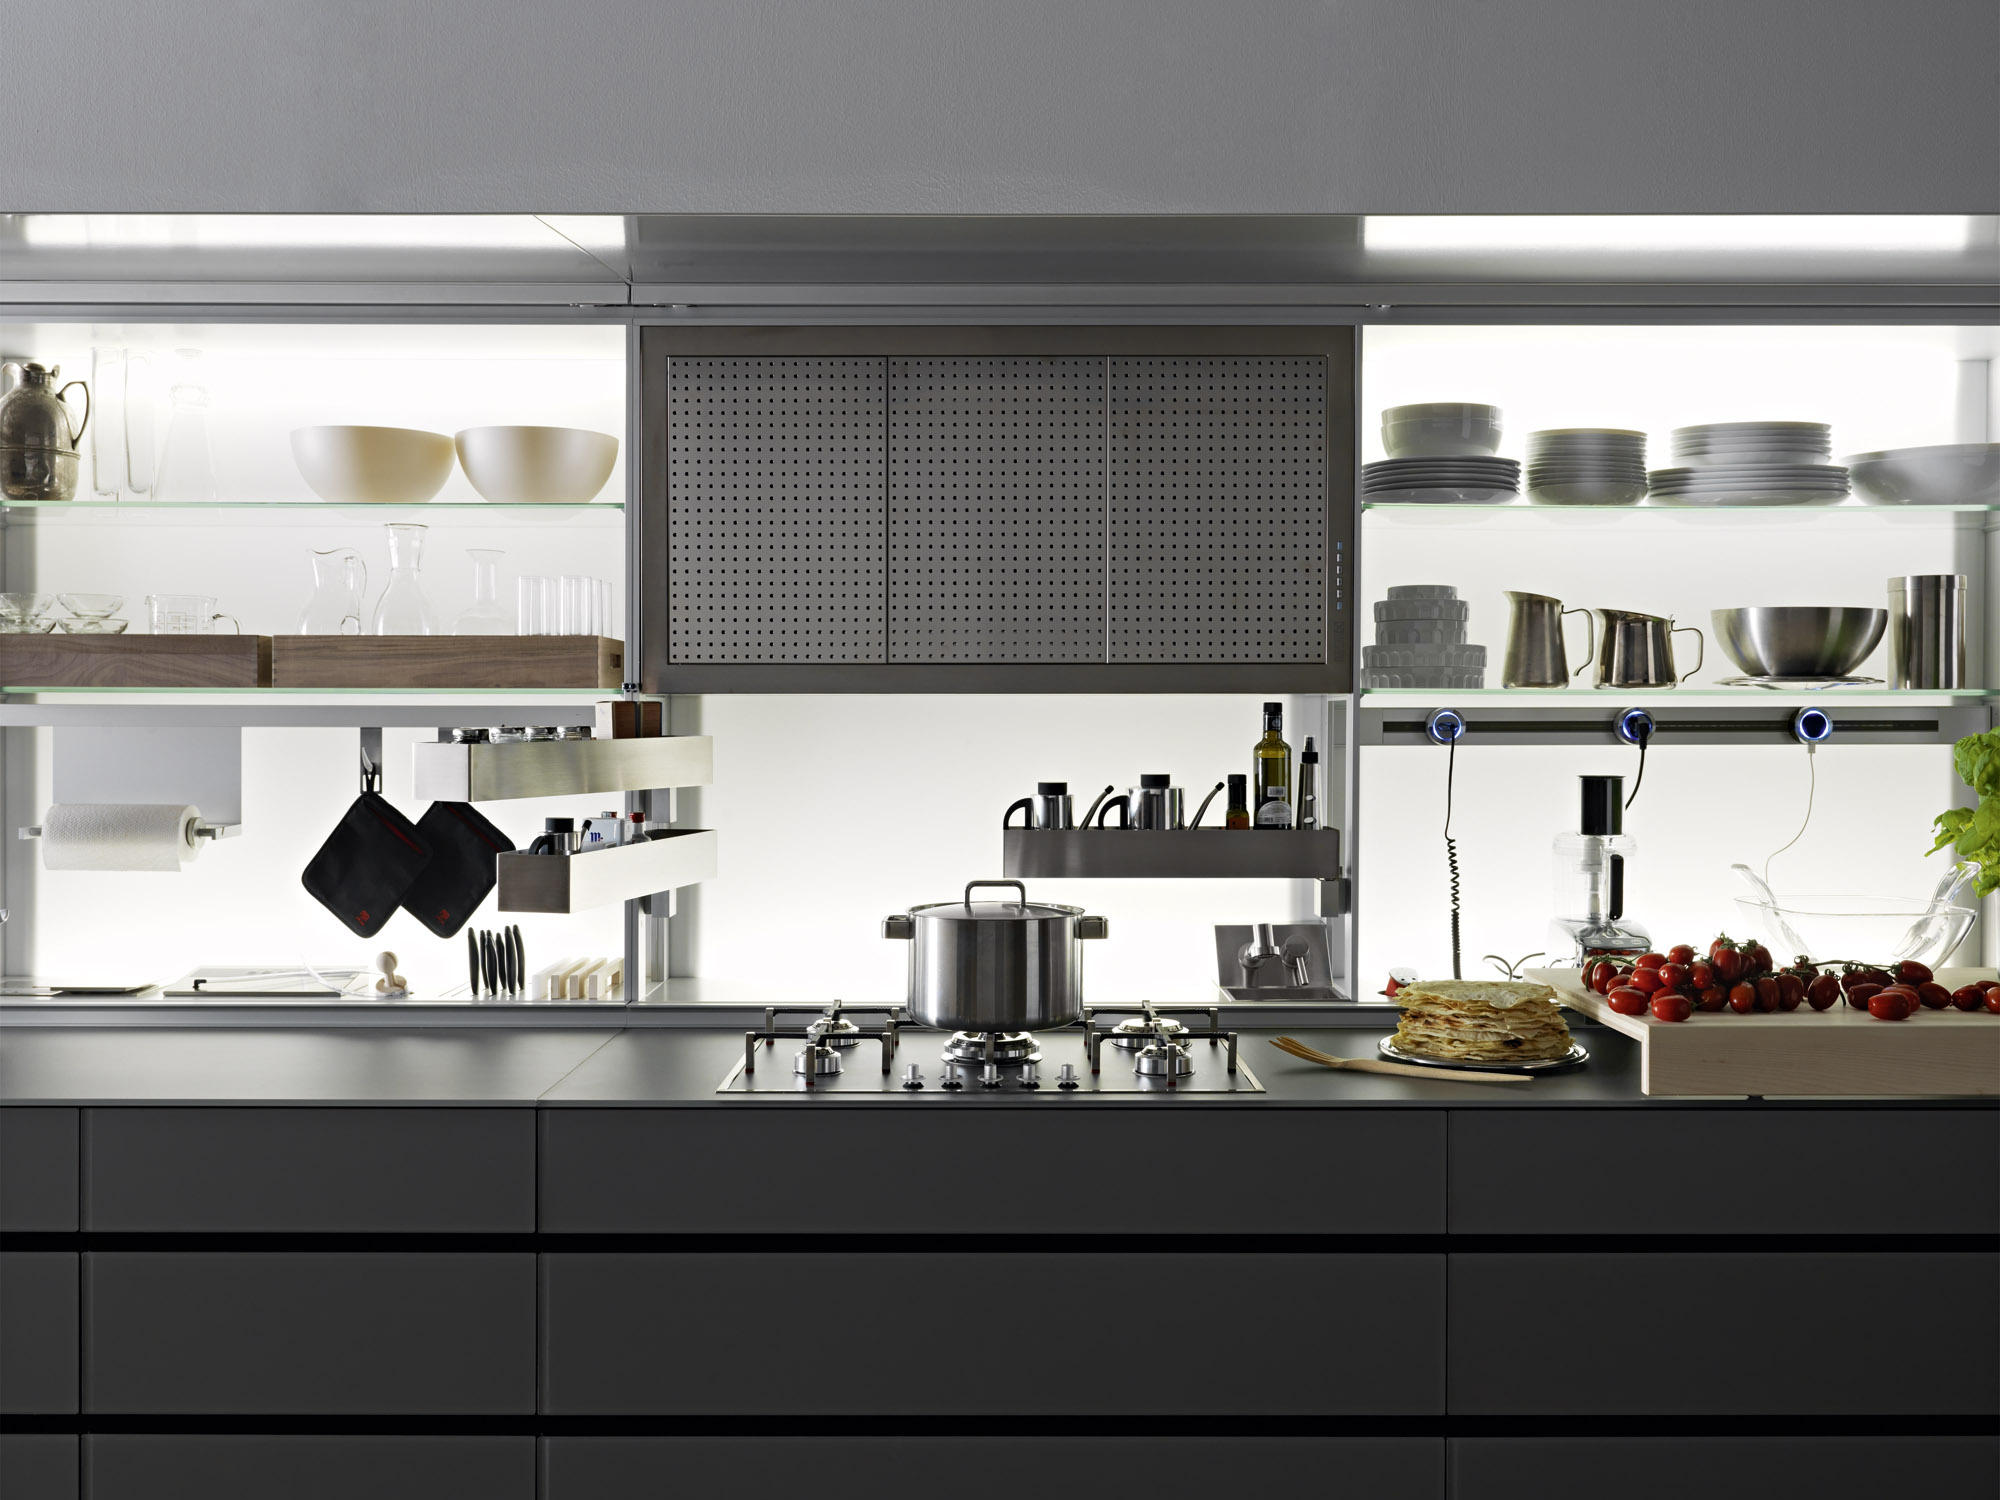 Awesome Valcucine New Logica System Gallery - Ideas & Design 2017 ...